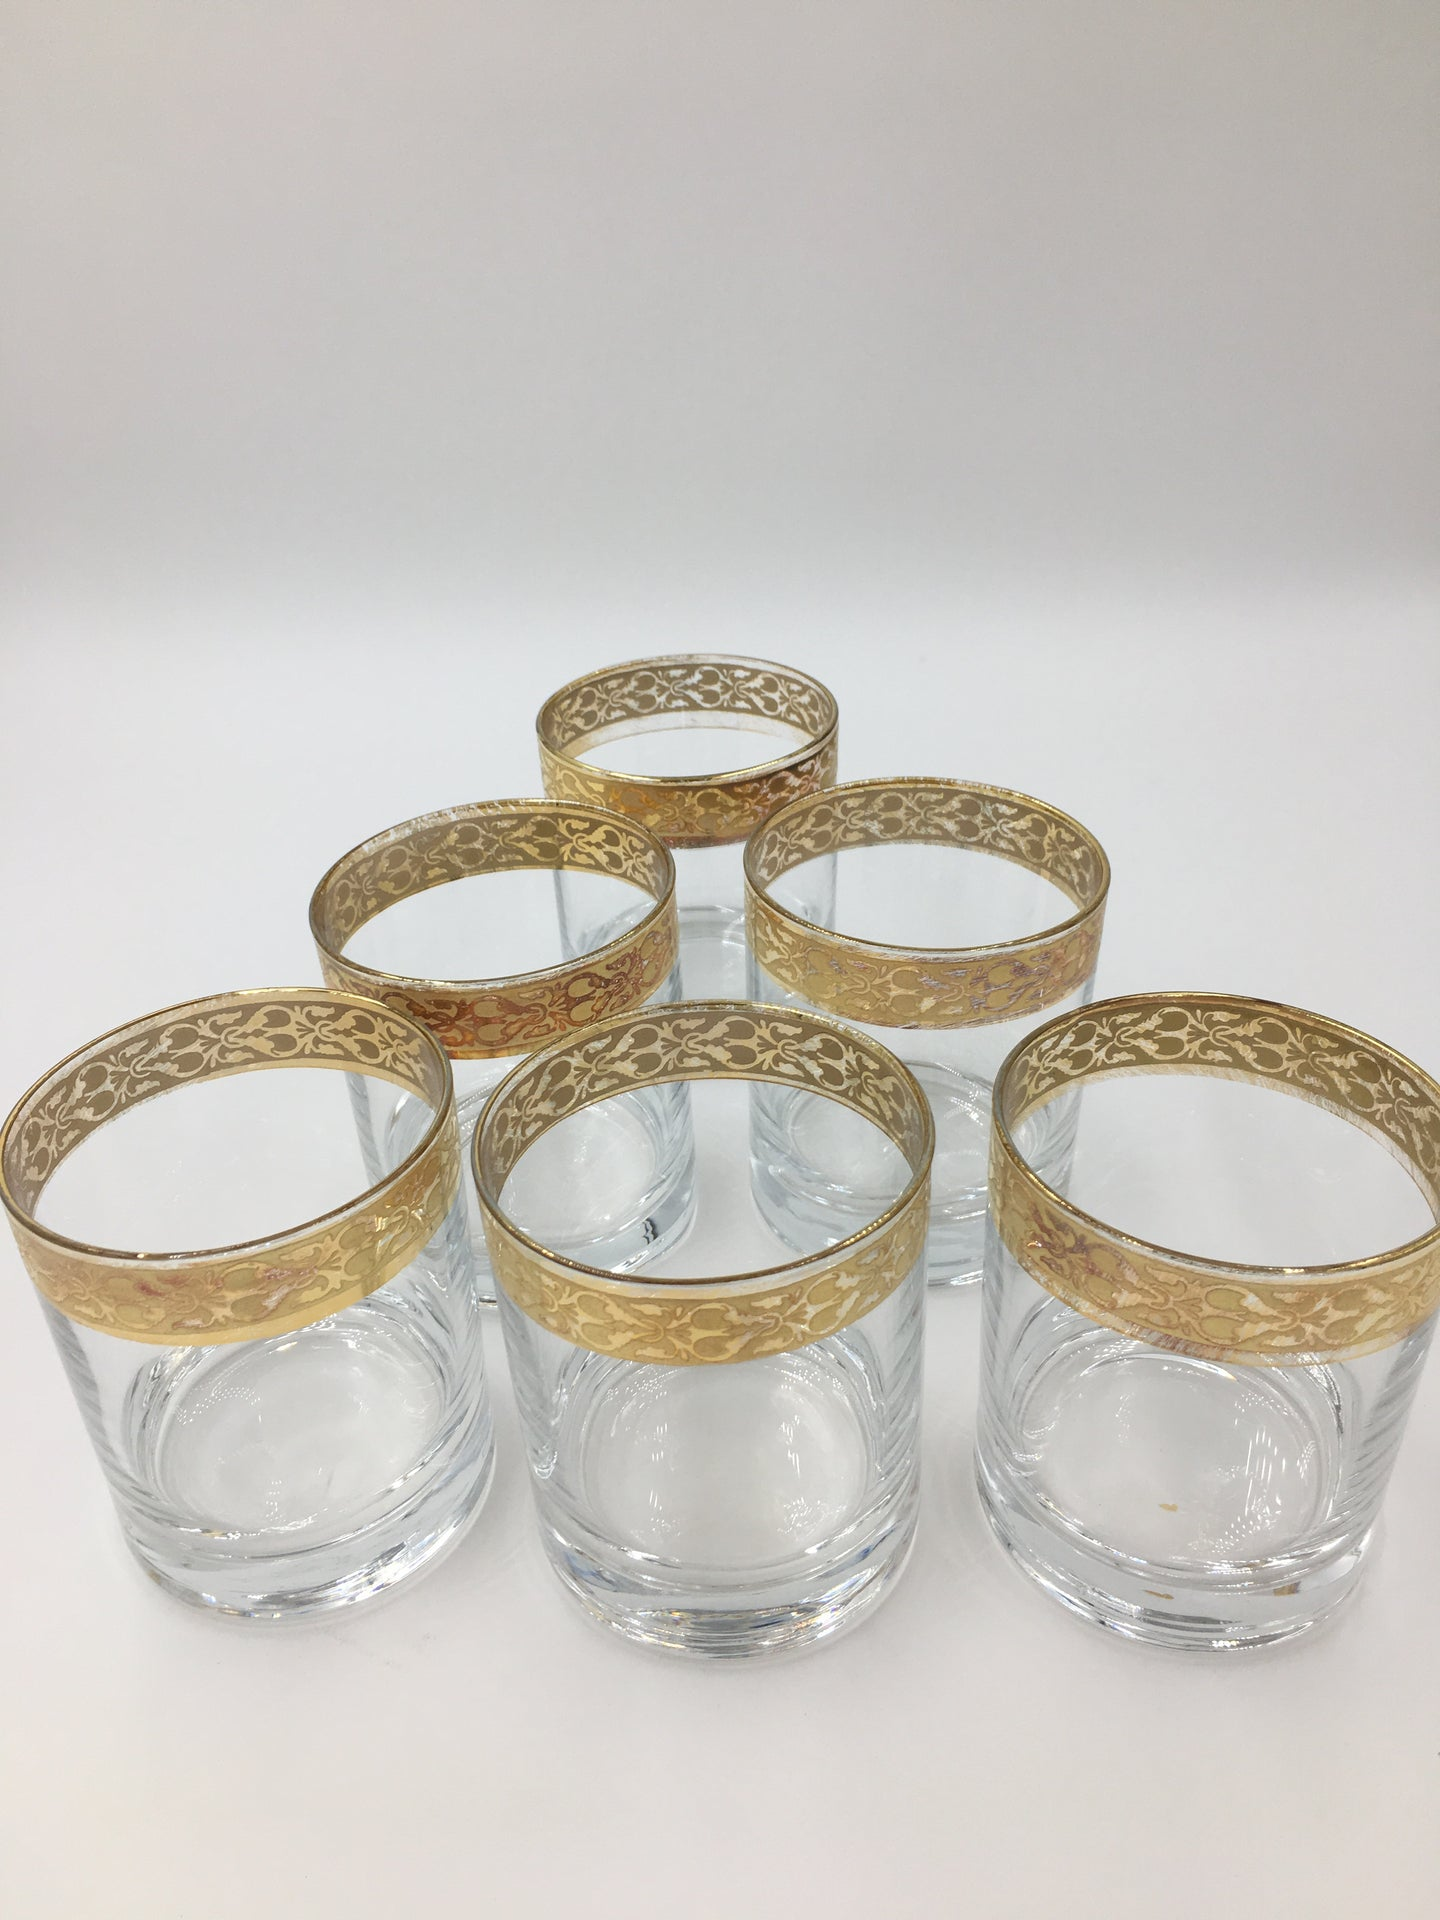 Vintage Gold Rimmed Small Rocks Glasses Set of 6